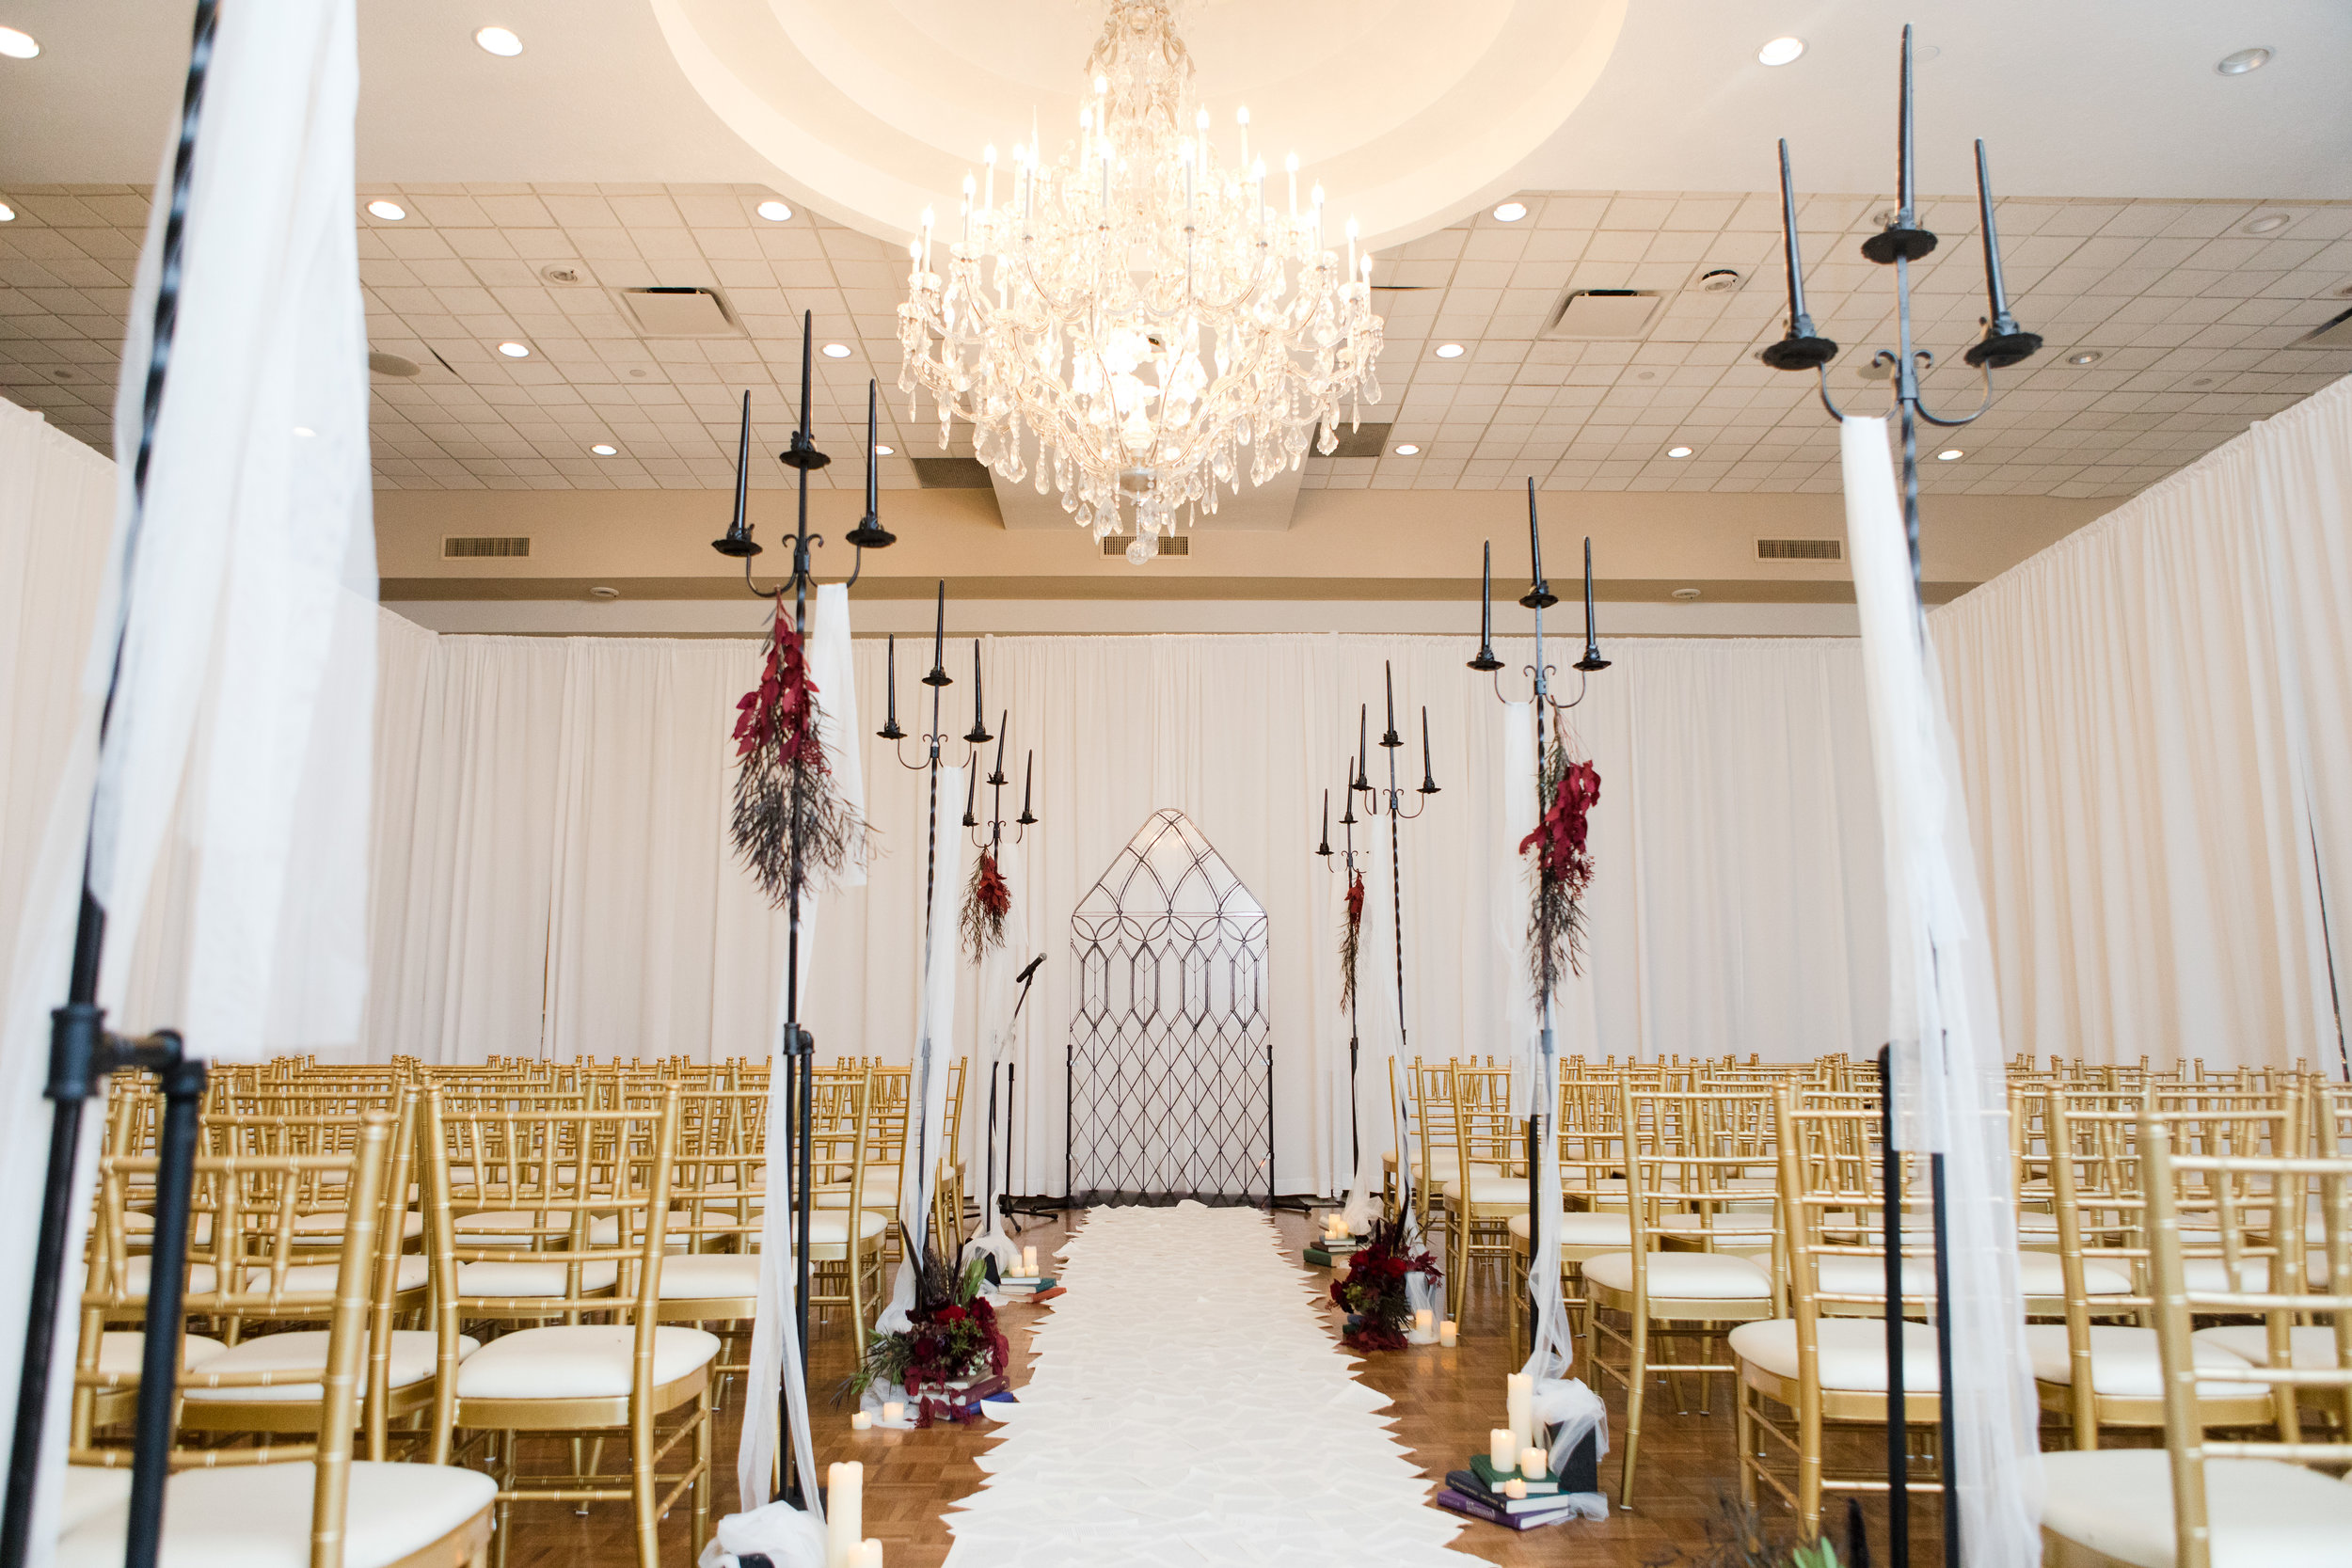 Beauty and the Beast inspired ceremony at Buona Sera Palazzo with castle window ceremony backdrop and book page aisle runner